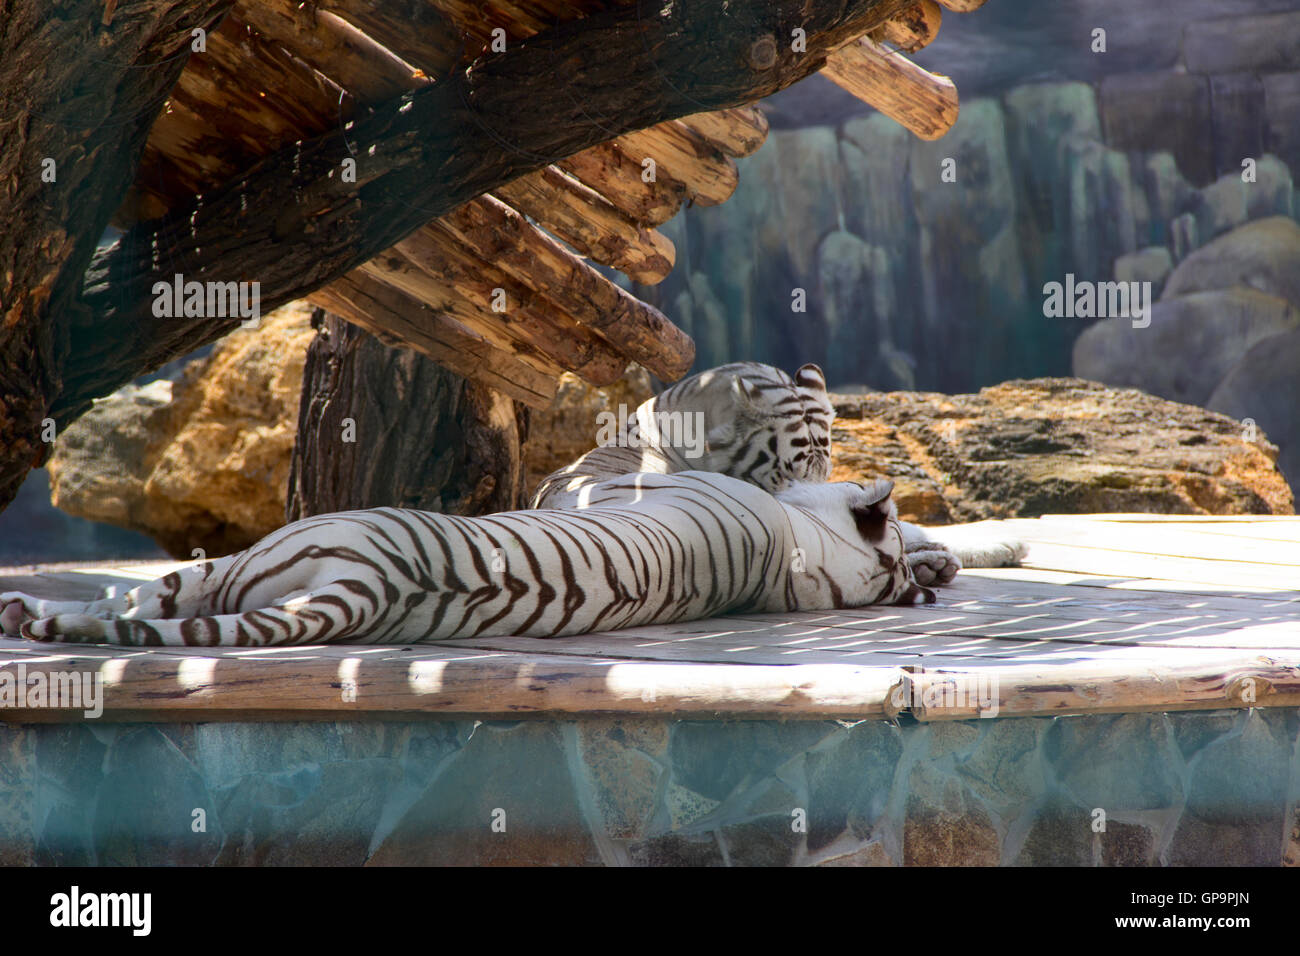 Family of white tigers. photo - Stock Image